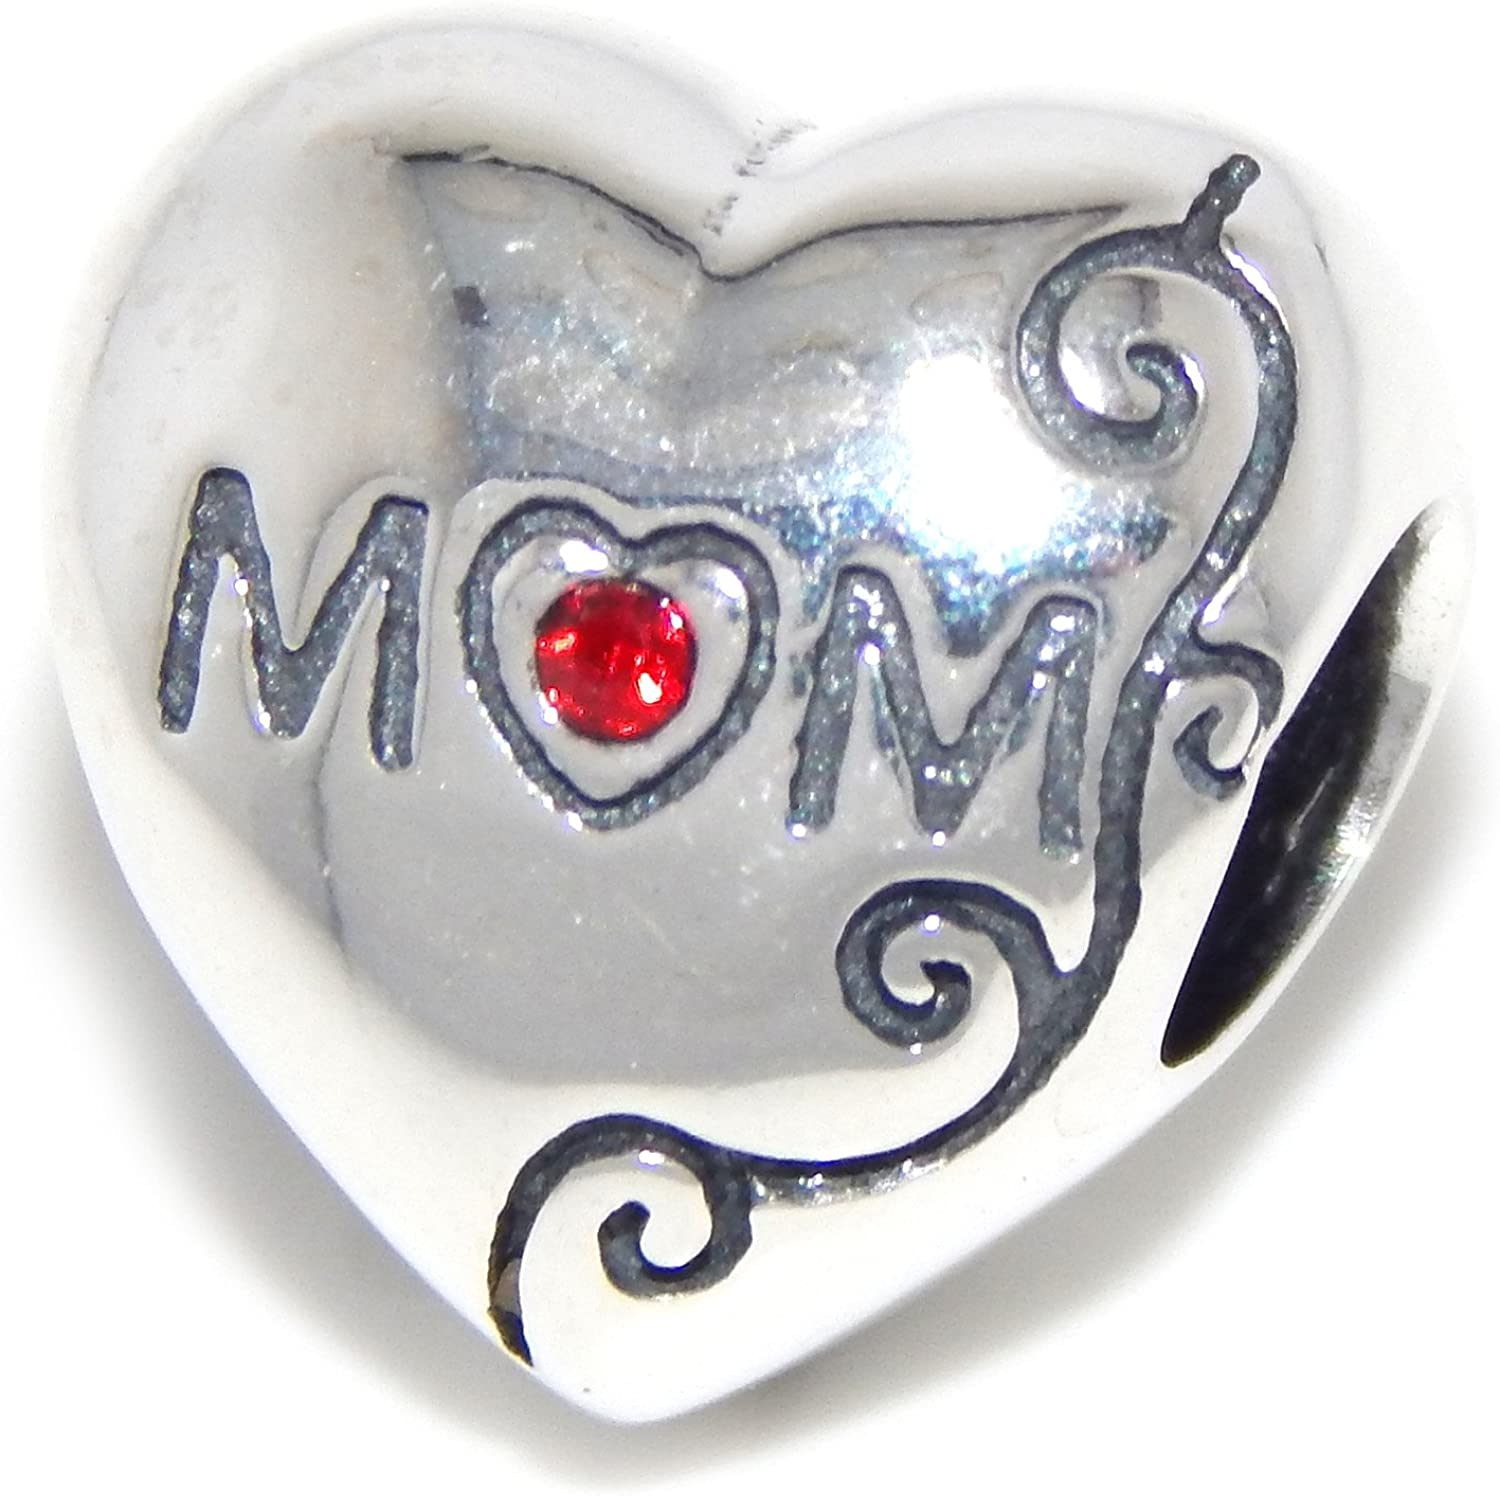 ICYROSE Solid 925 Sterling Silver Mom Heart w//Red CZ Charm Bead 370 for European Snake Chain Bracelets